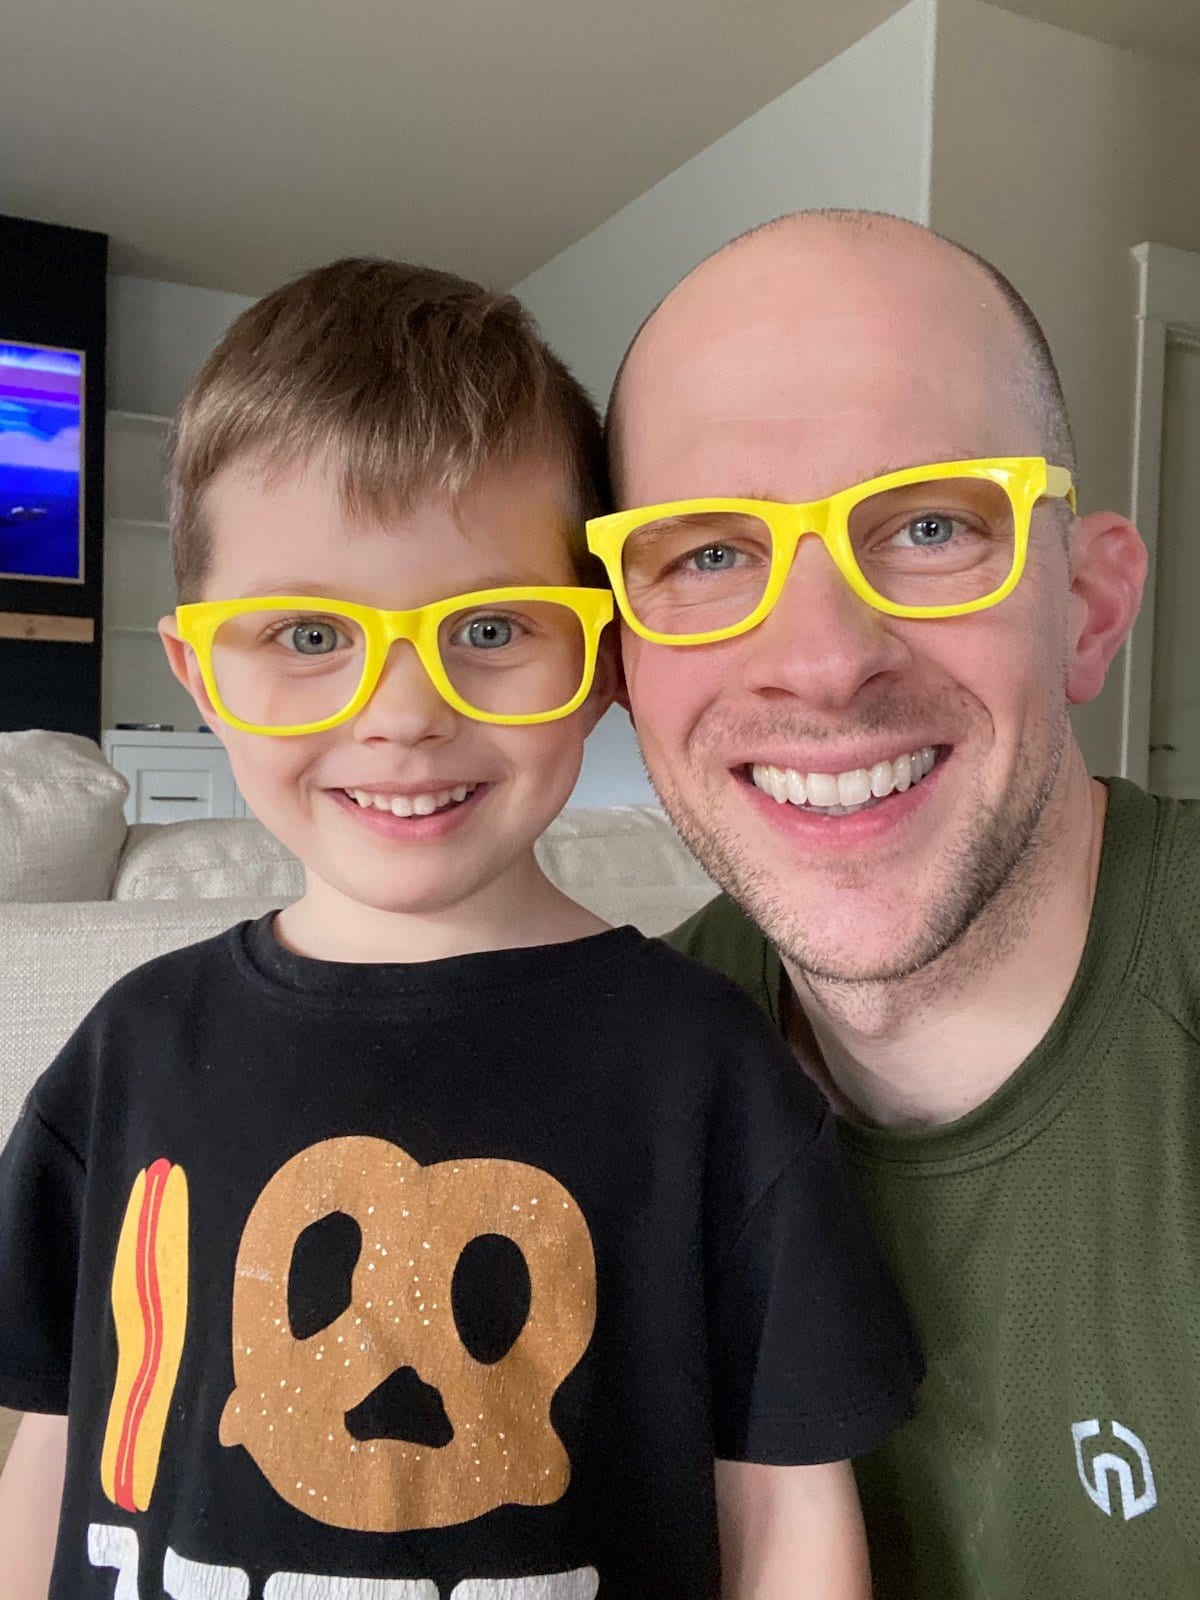 father and son with matching glasses